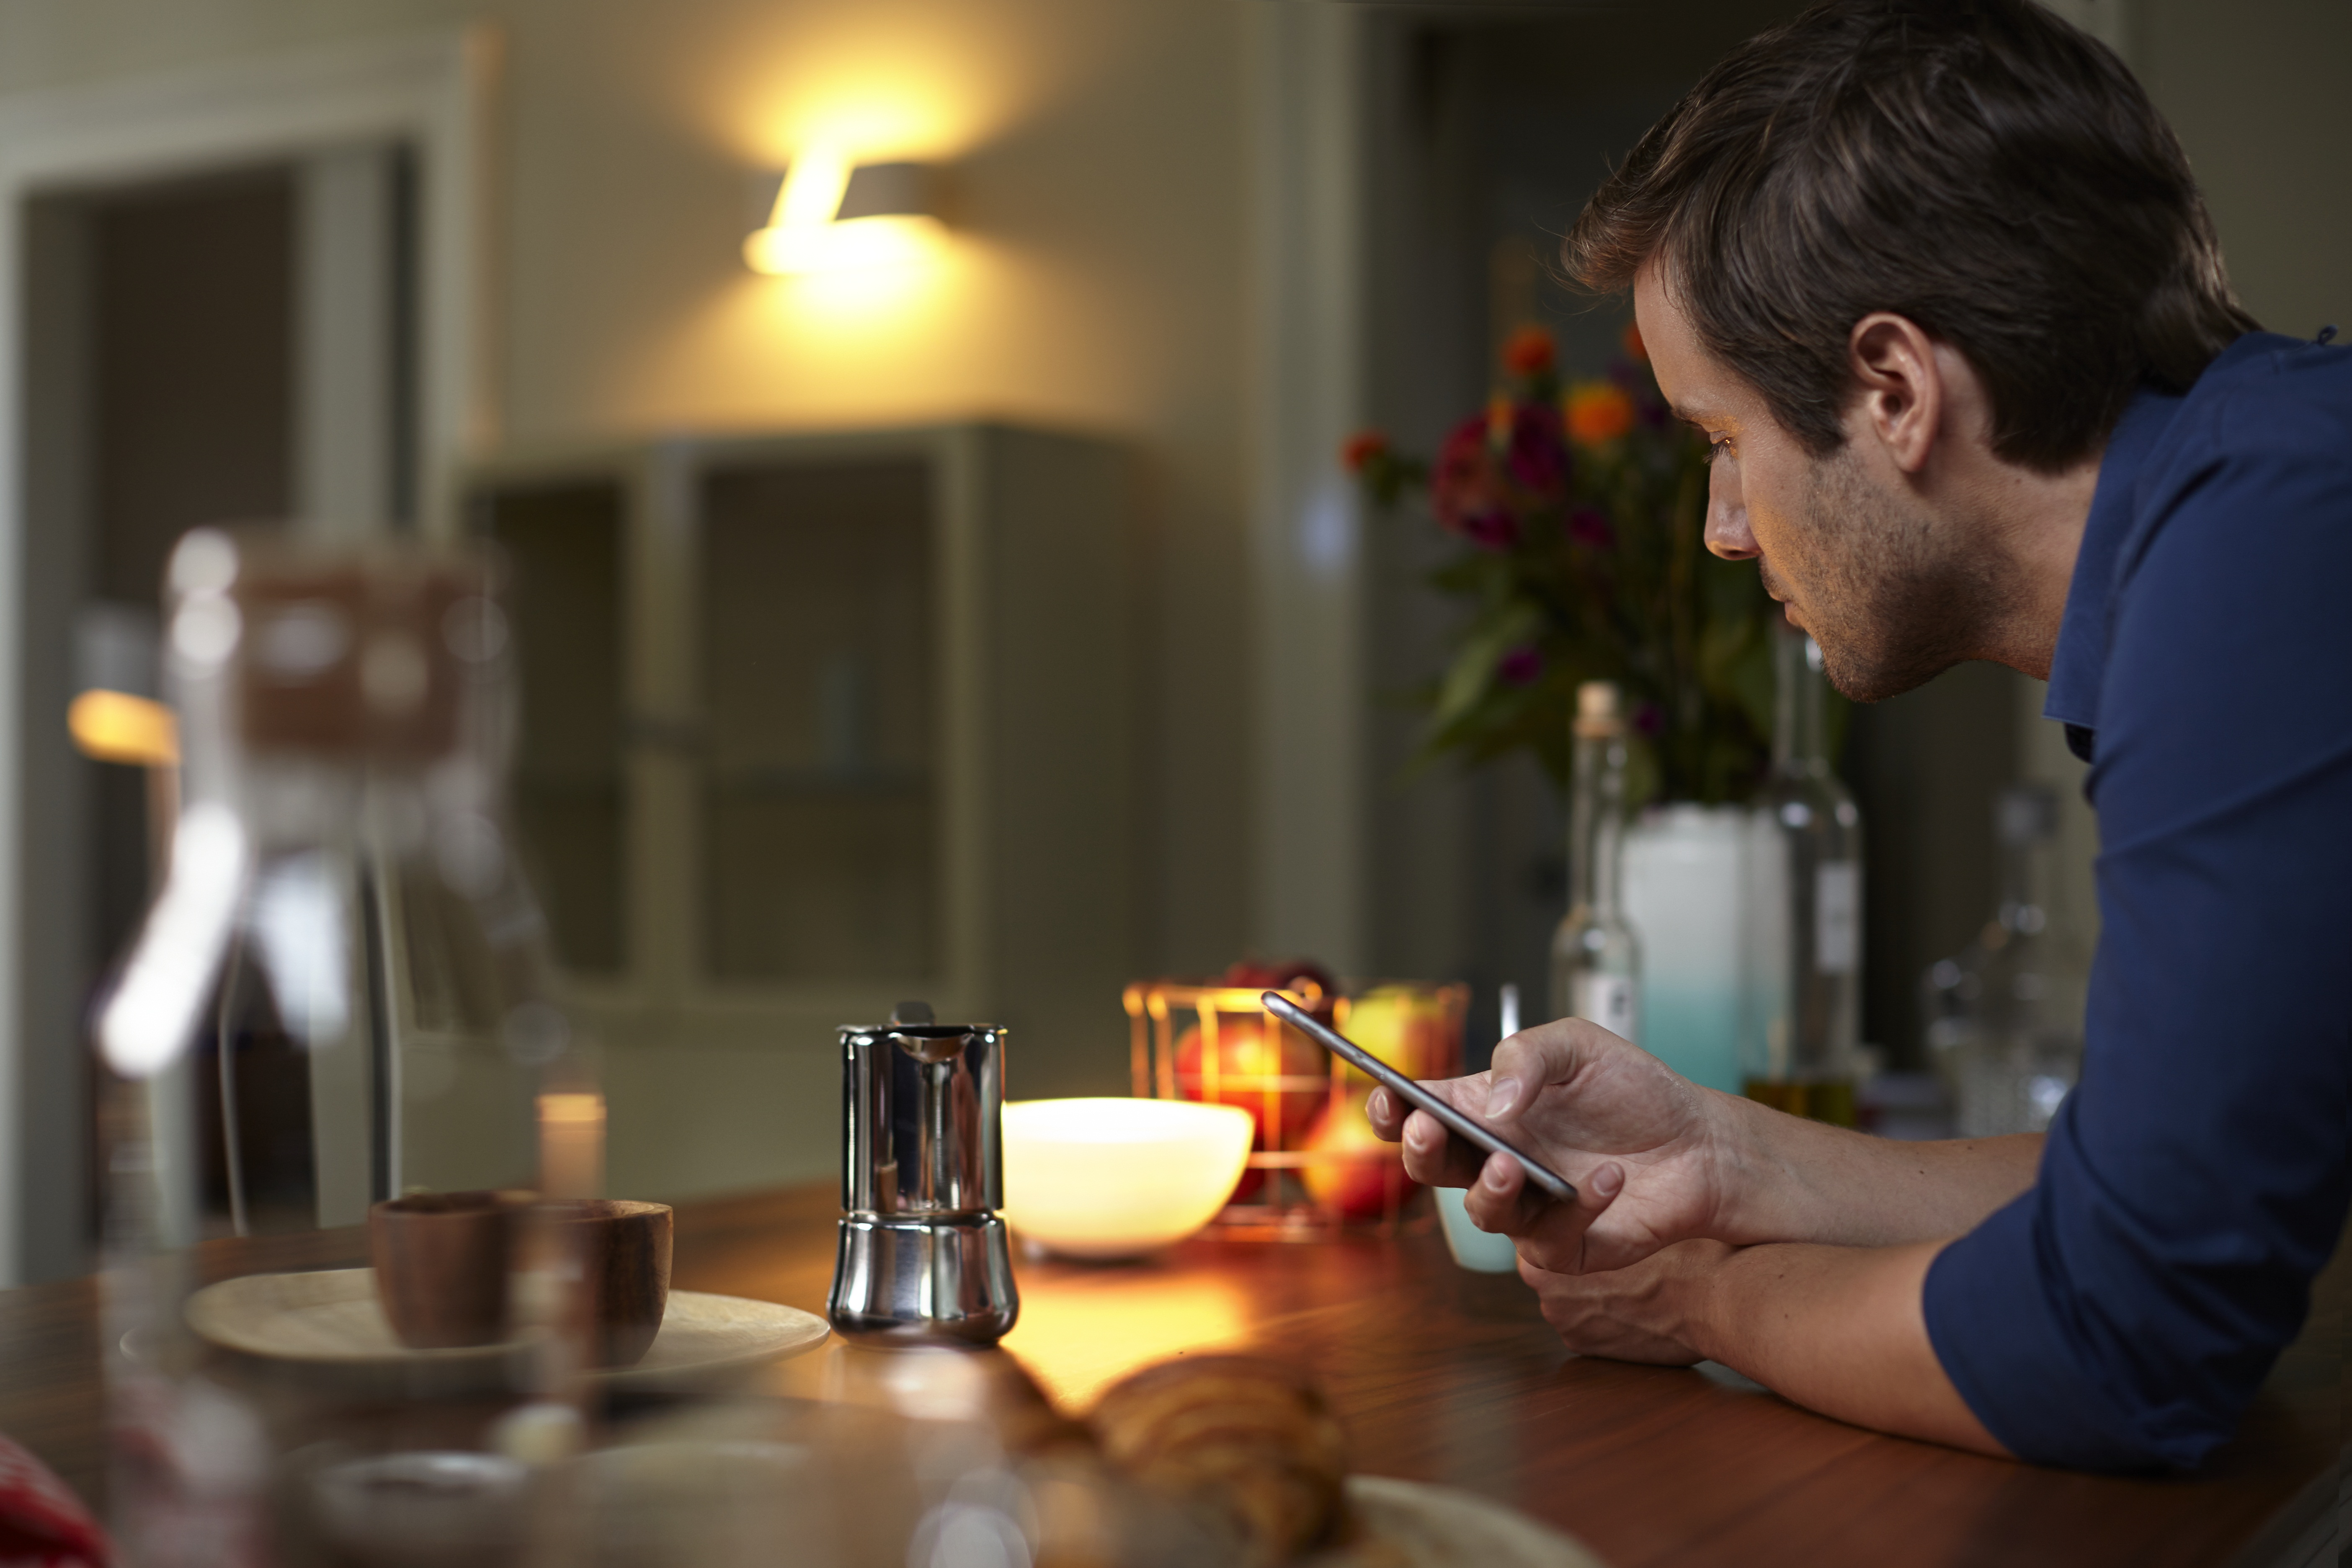 Smart Home Automation in the News